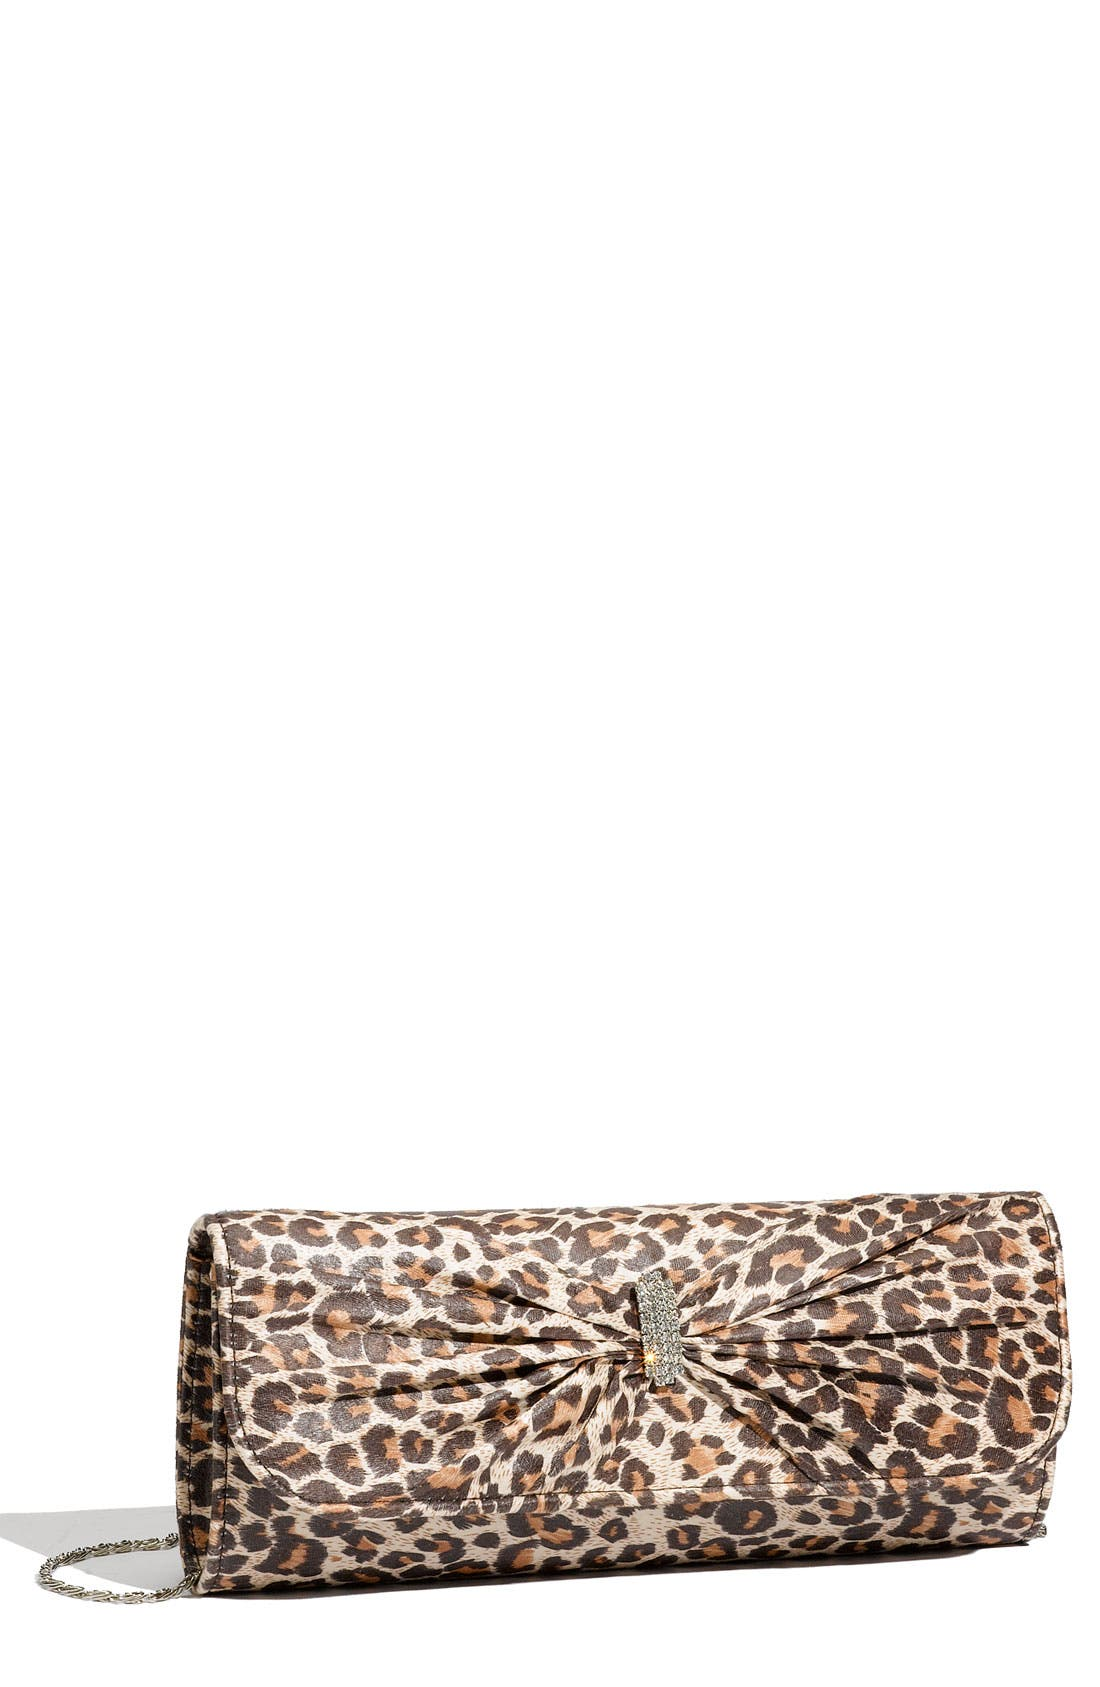 Main Image - Top Choice Leopard Print Embellished Bow Clutch